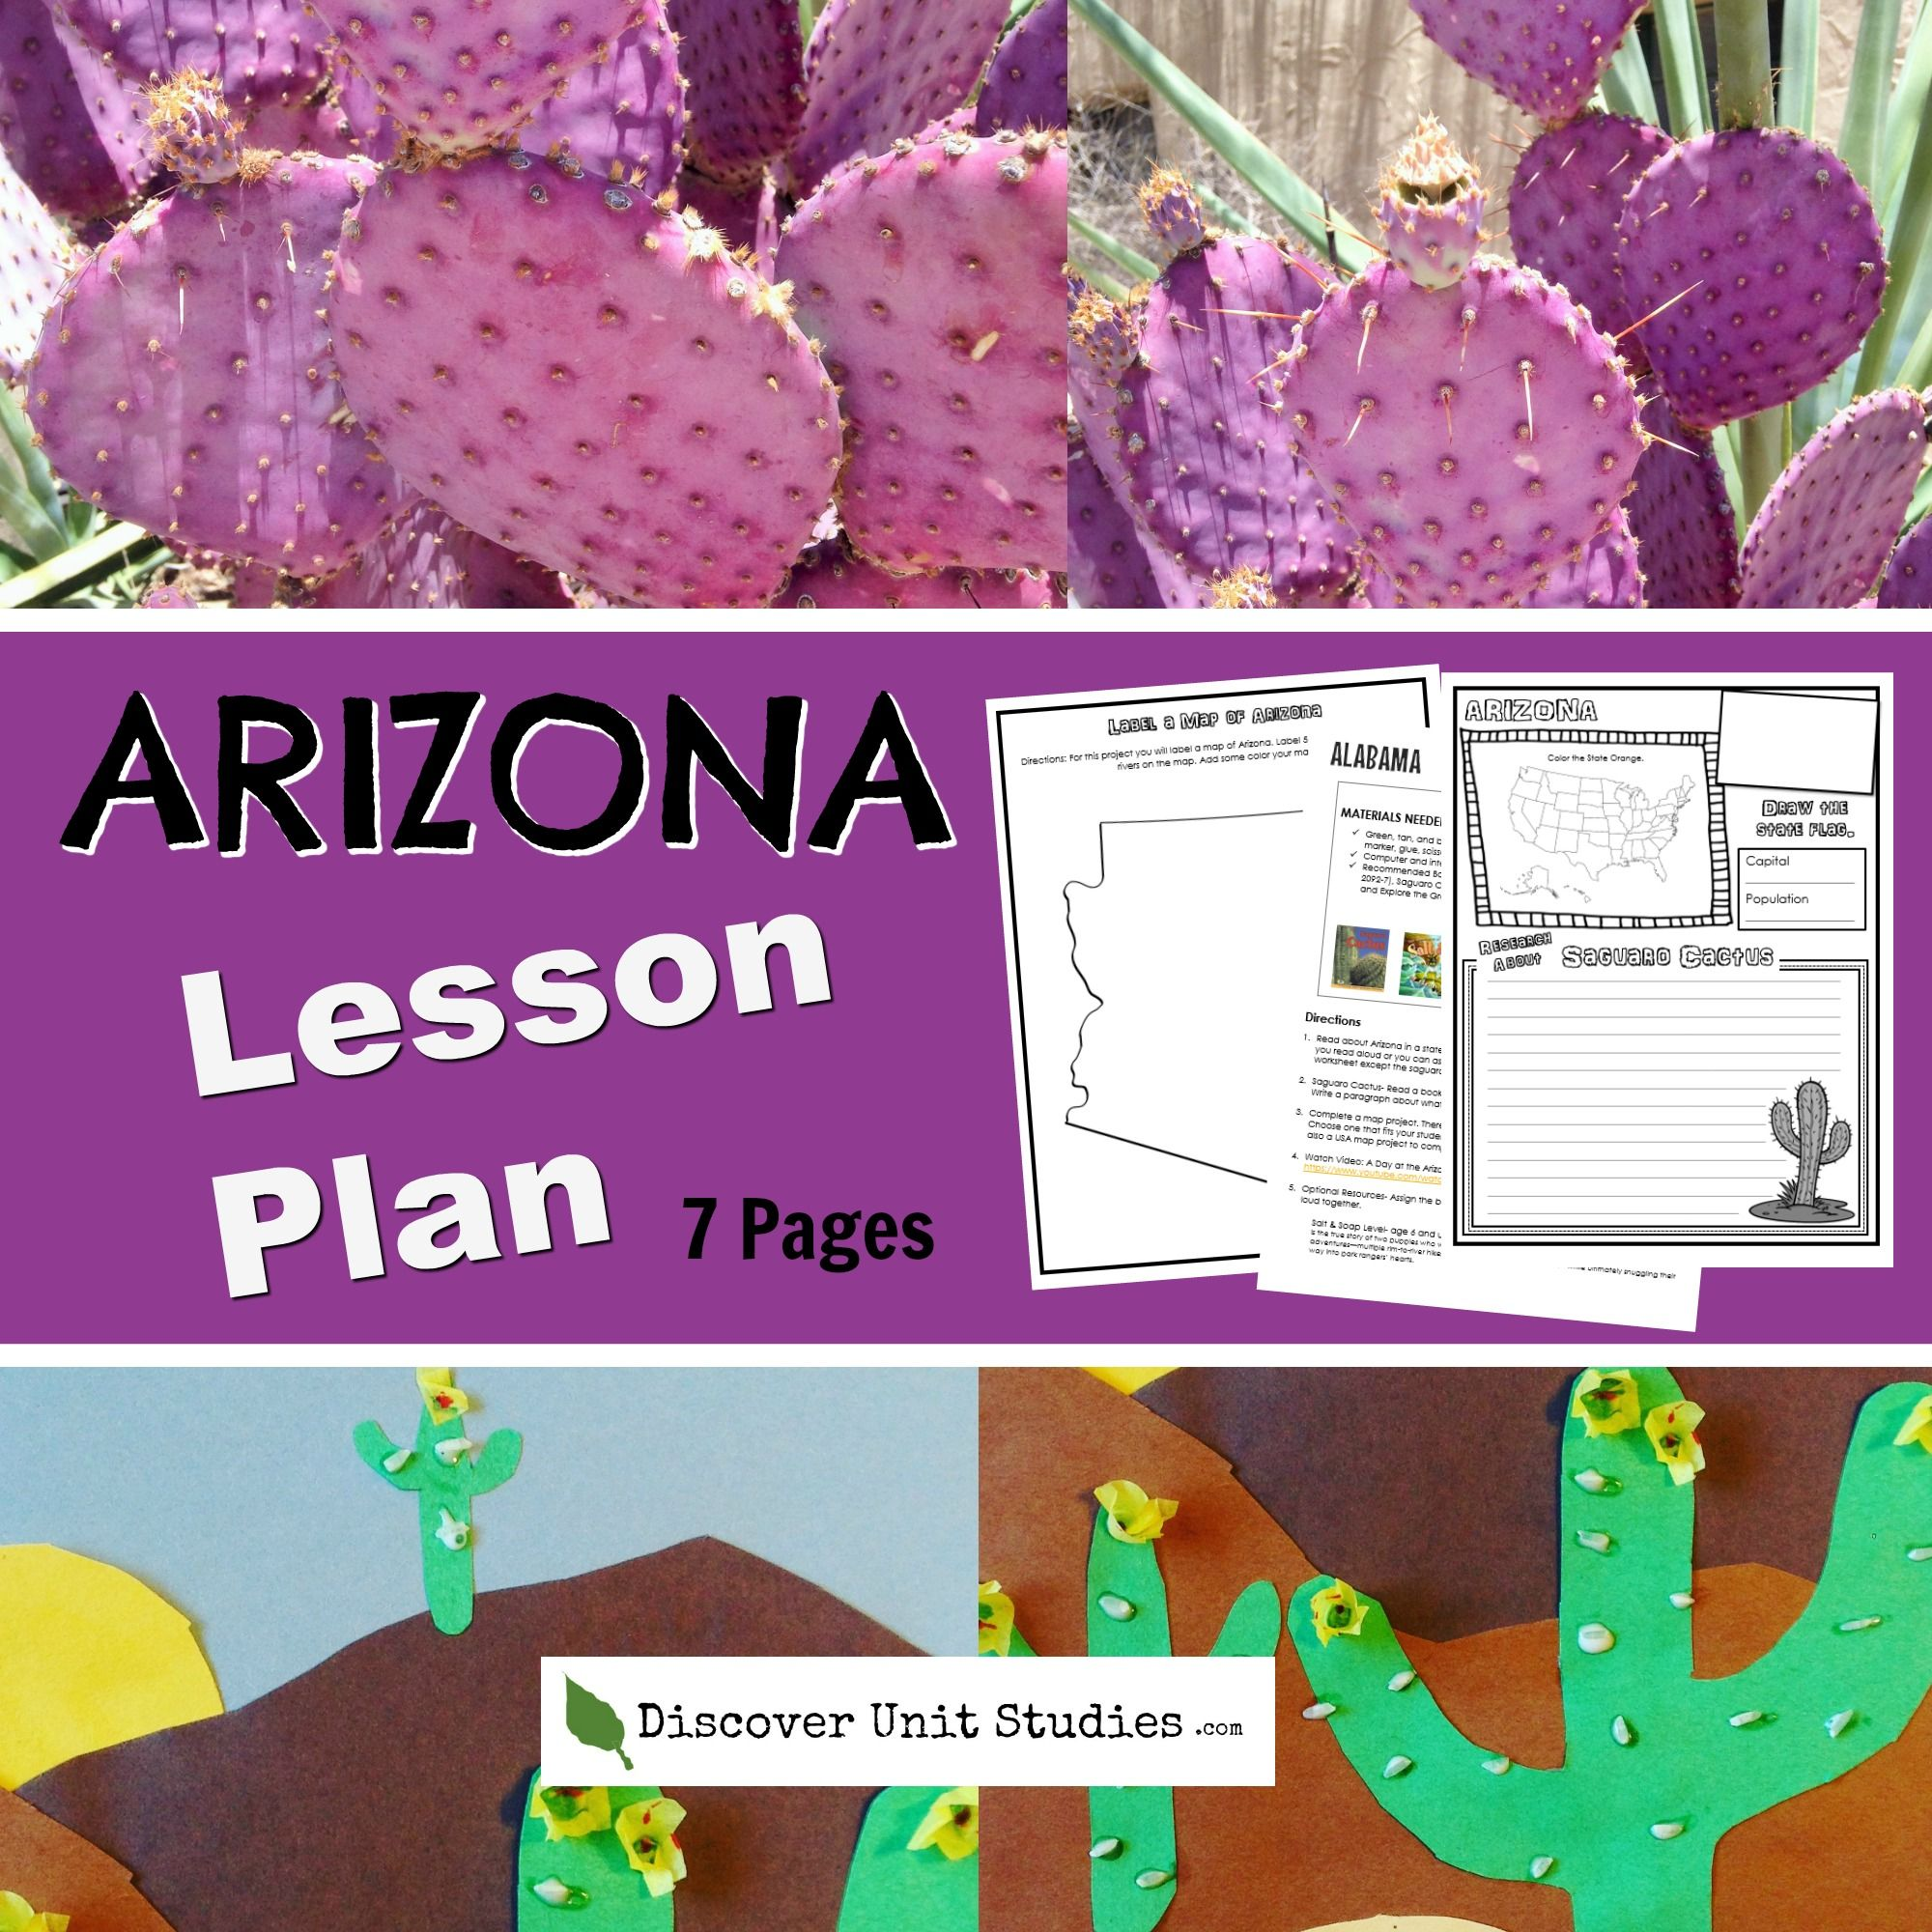 Learn About Arizona With This 7 Page Download Inside You